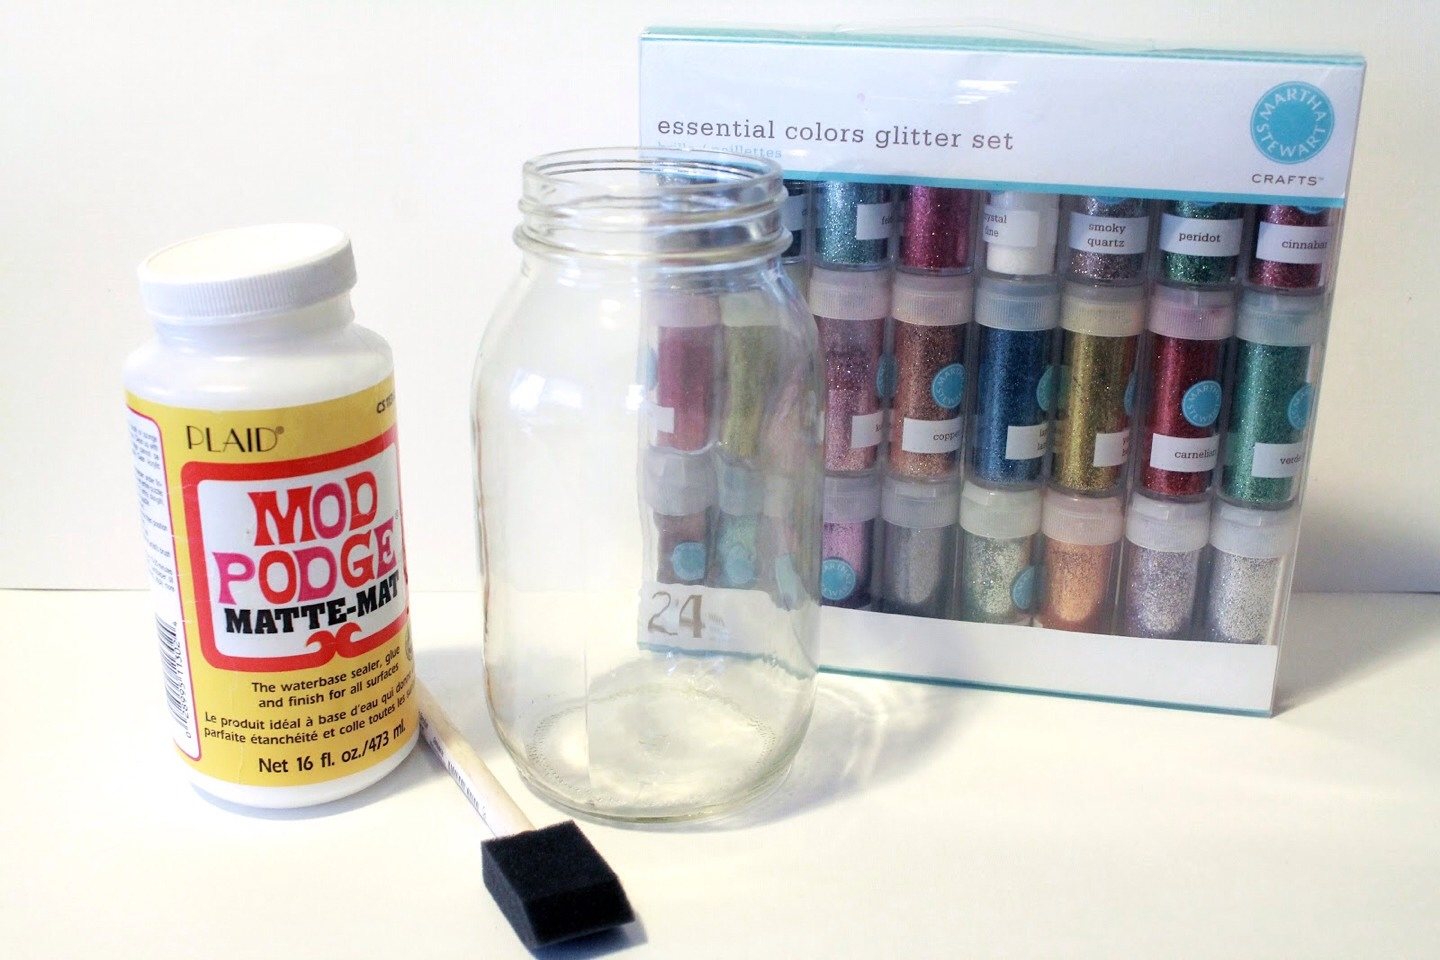 Paint the inside of a jar with PVA glue them tip glitter inside the jar. Put the lid on and shake until there is and even coverage and then tip the excess out.